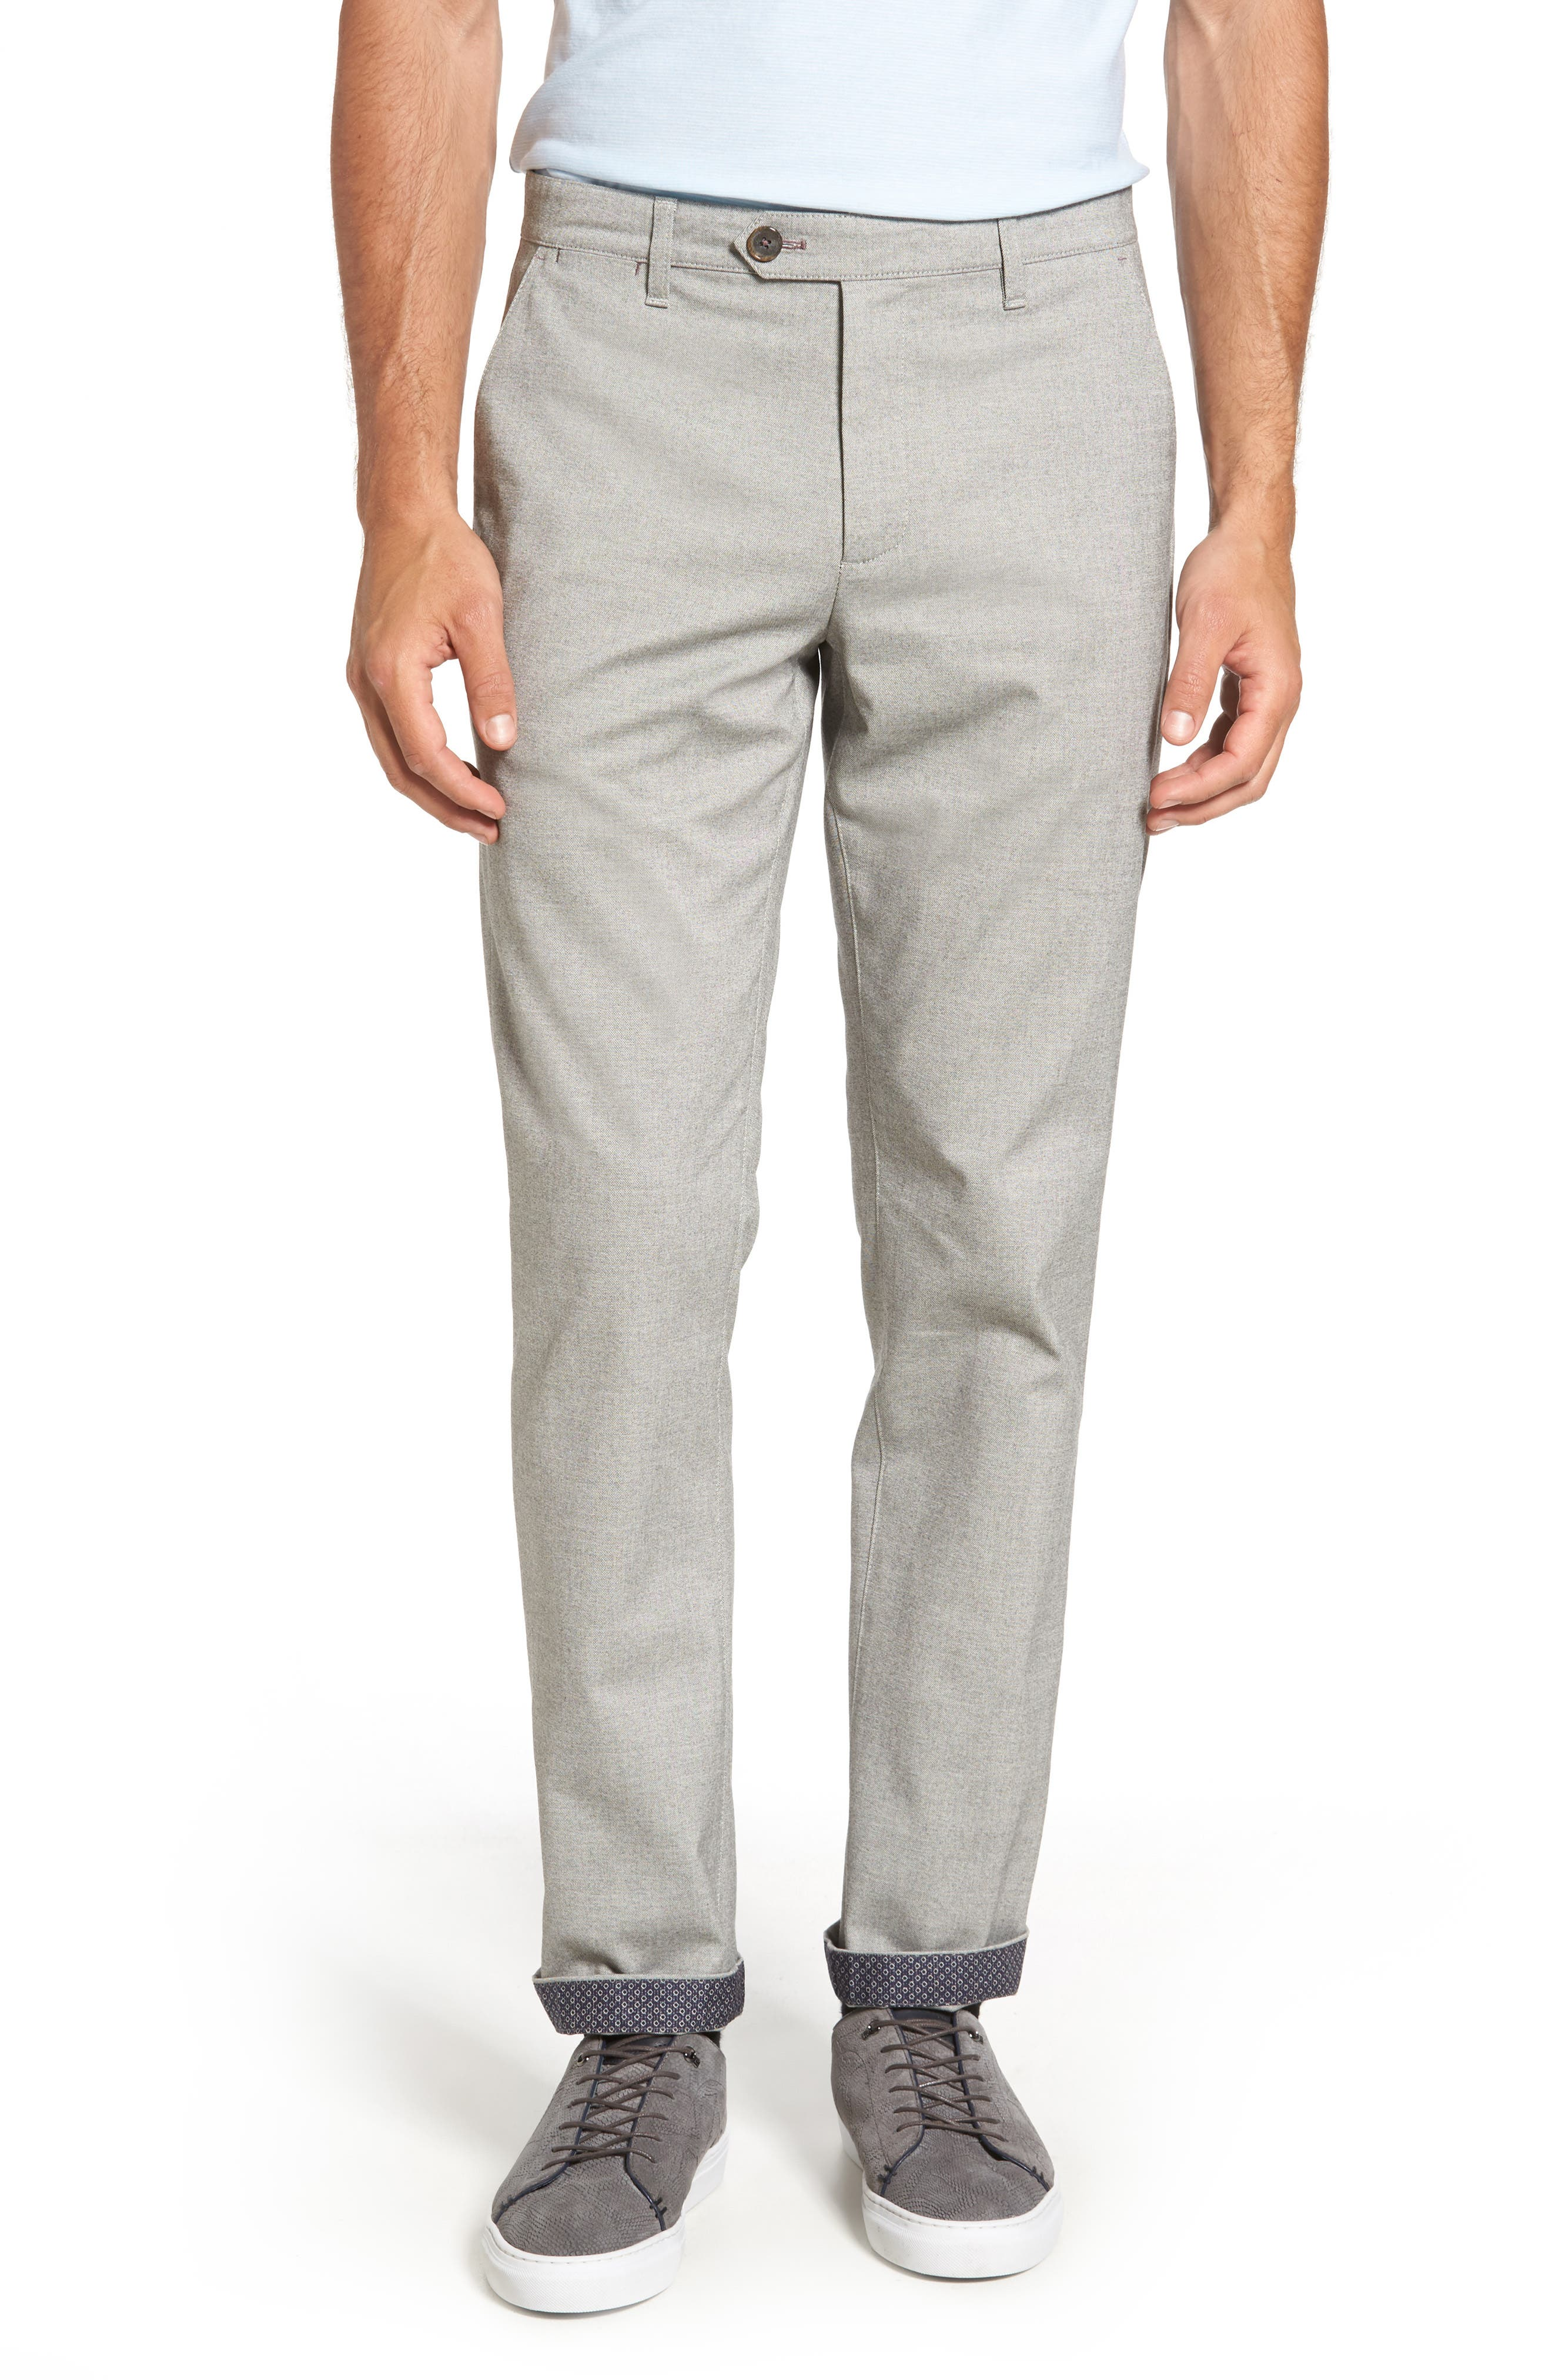 Volvek Classic Fit Trousers,                         Main,                         color, Grey